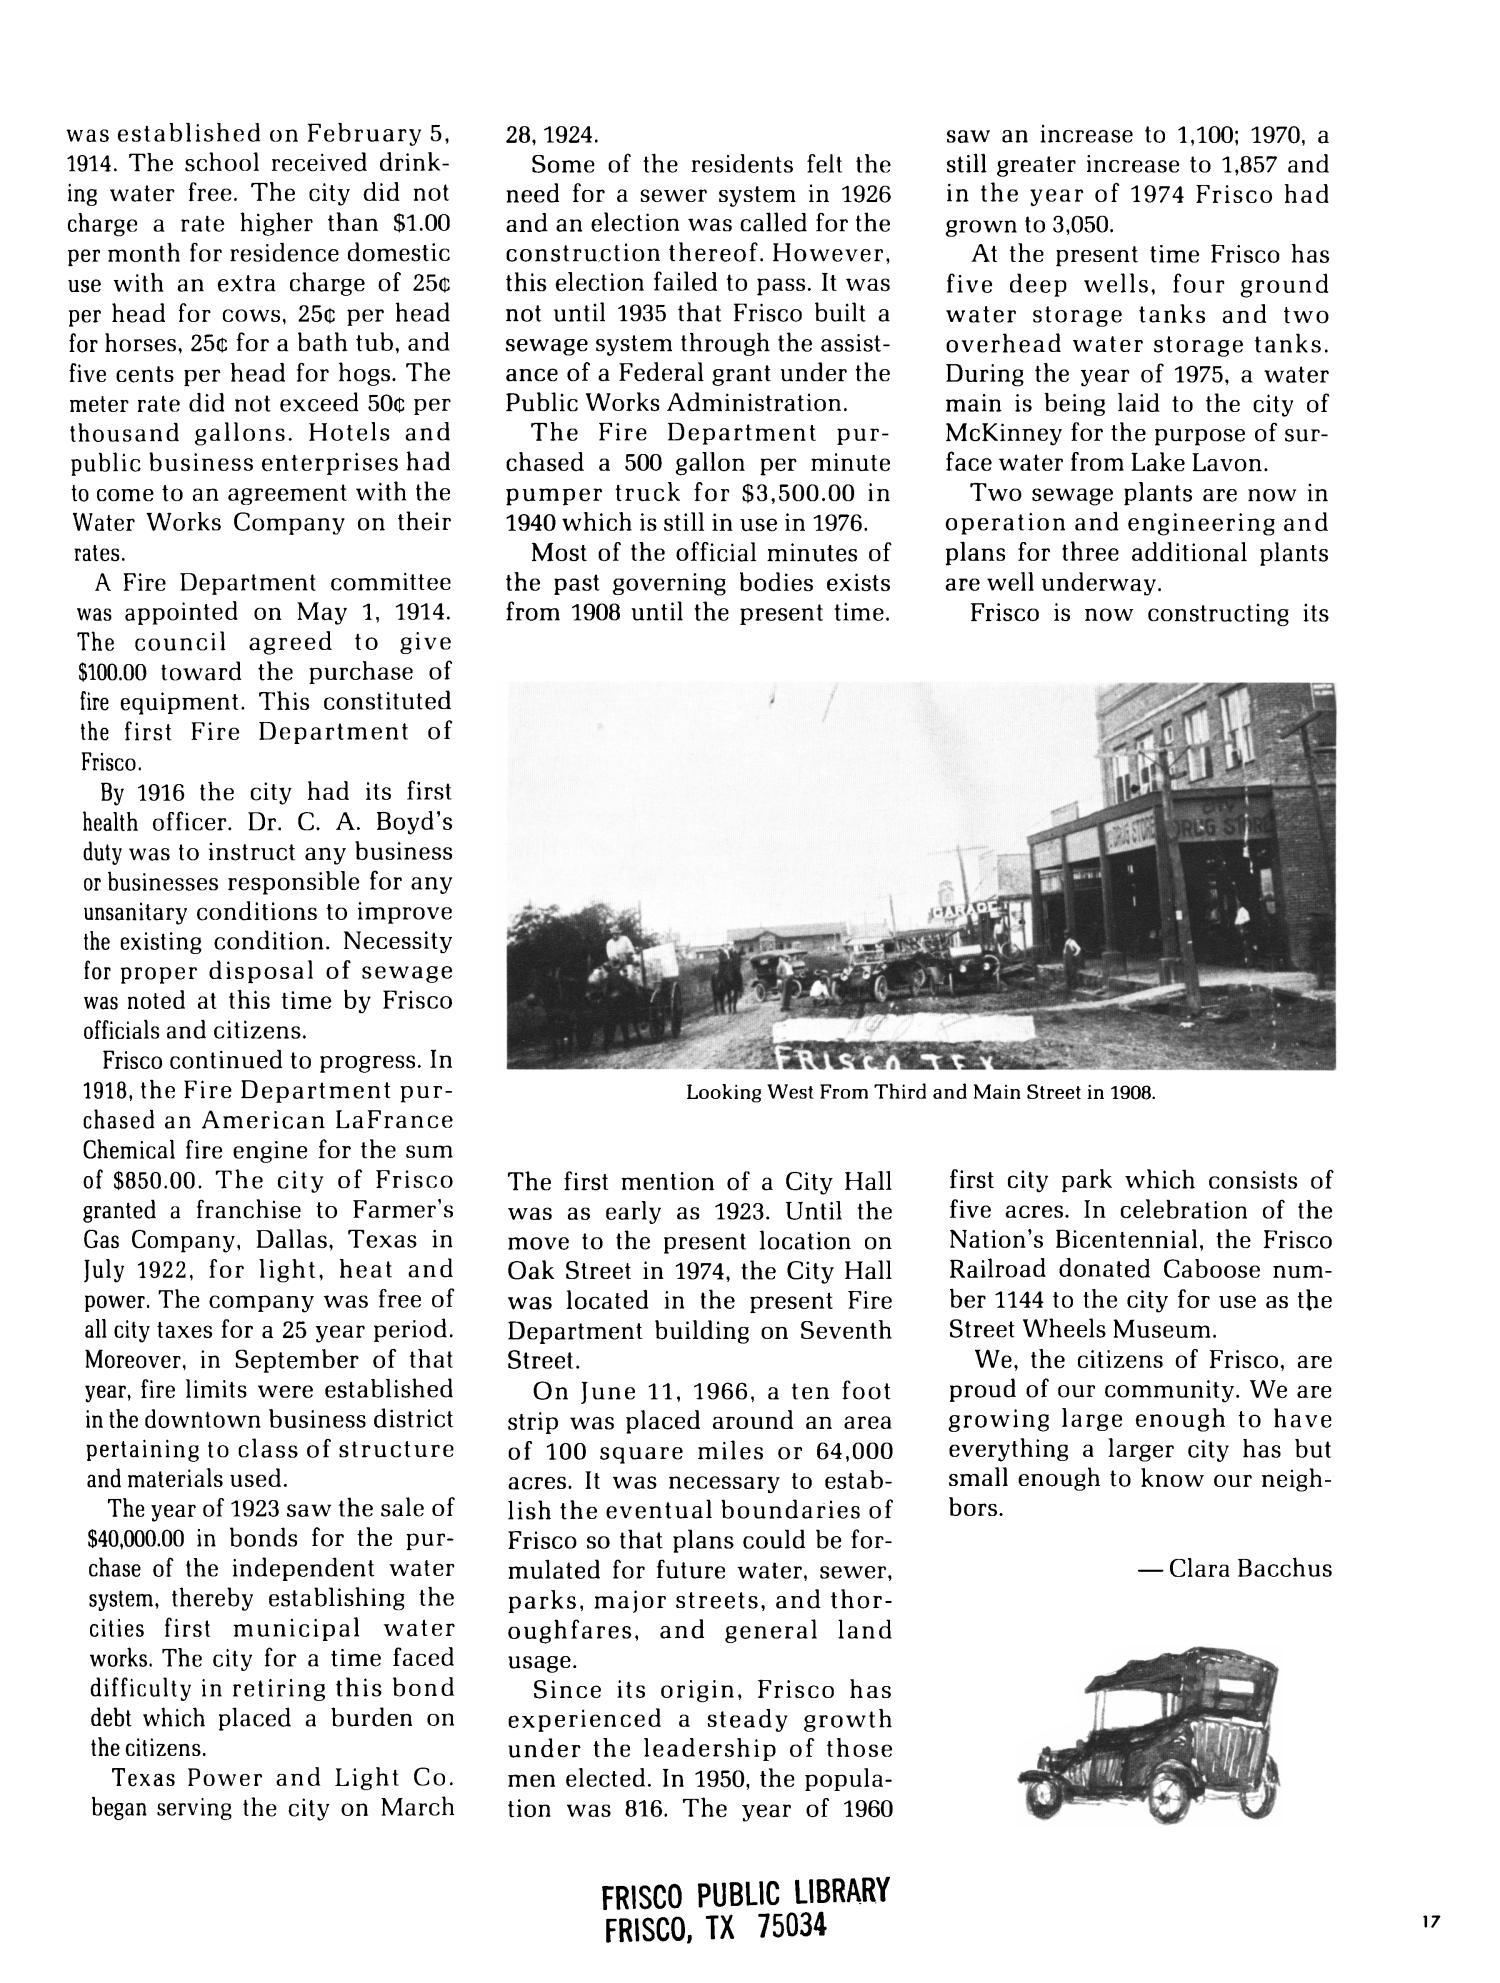 The History of Frisco 1902-1976 - Page 17 - The Portal to